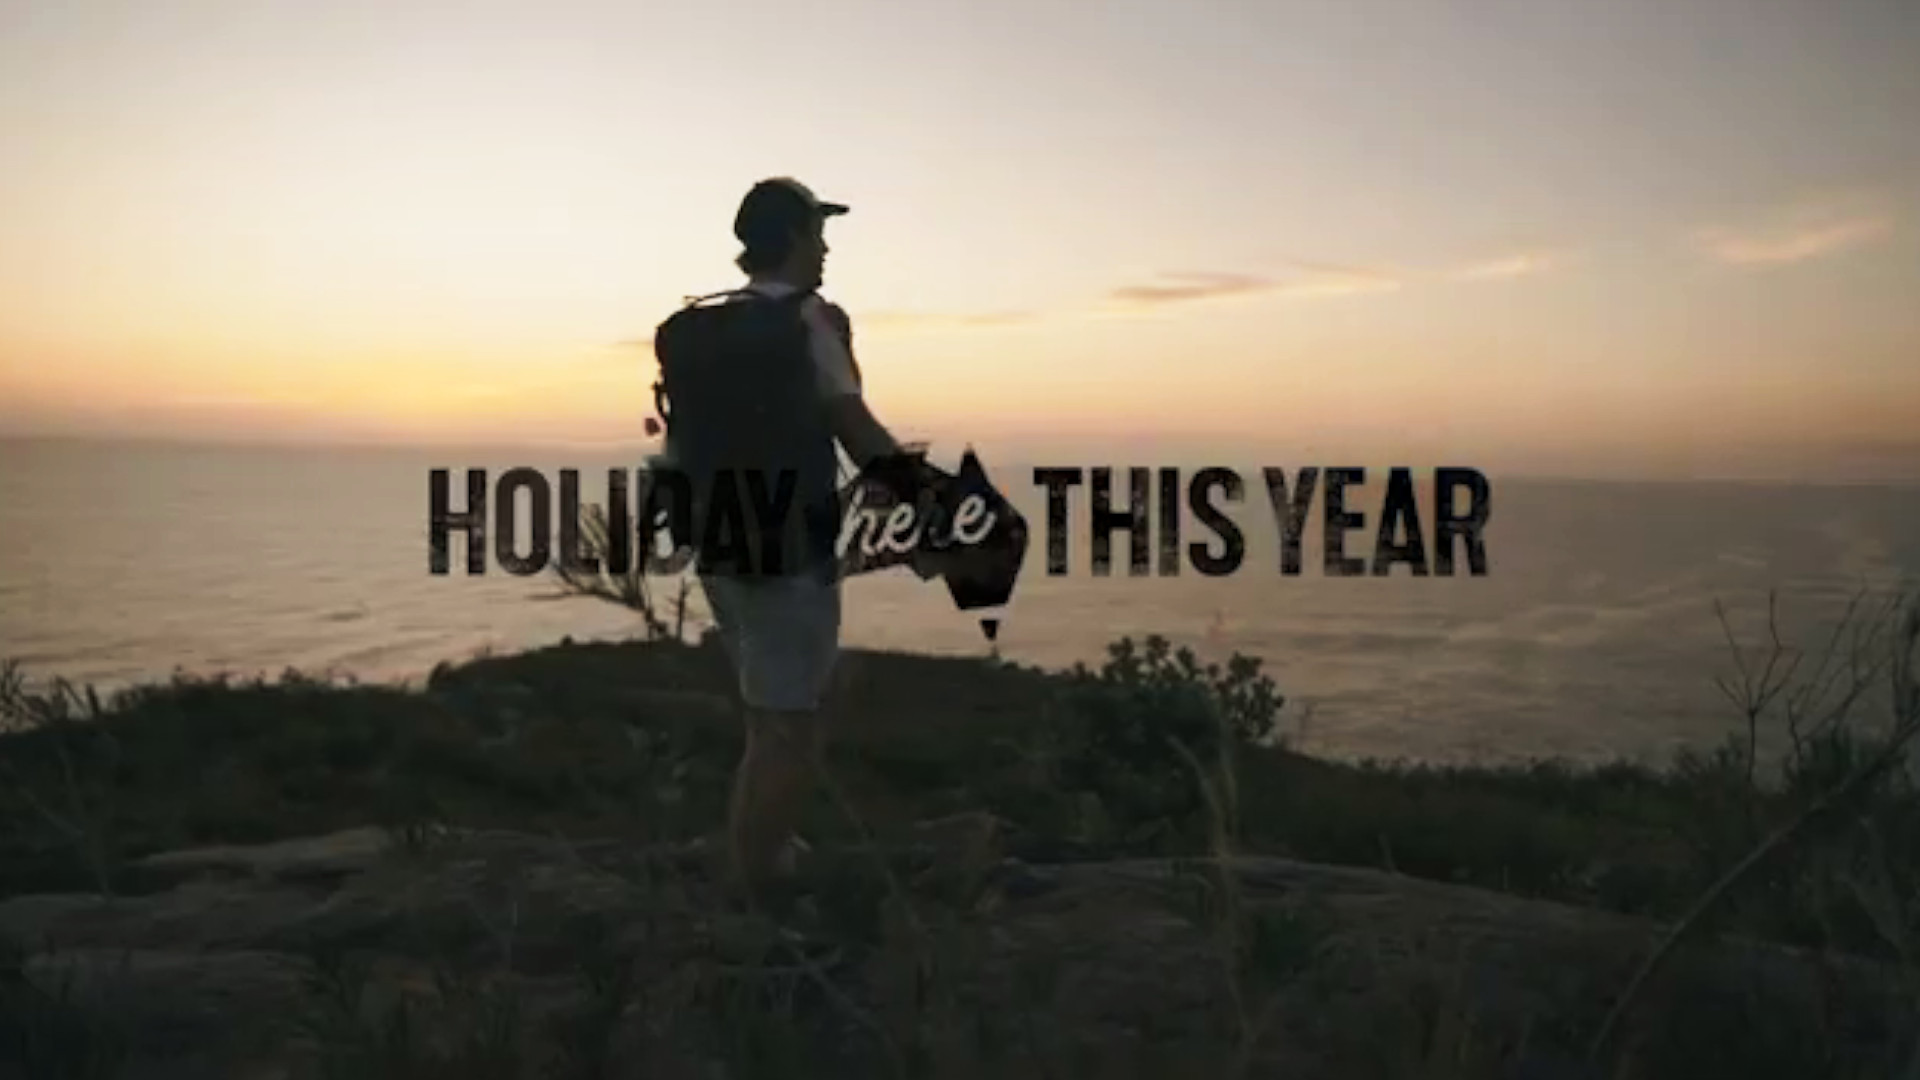 Holiday Here This Year, 2021 Campaign of Tourism Australia